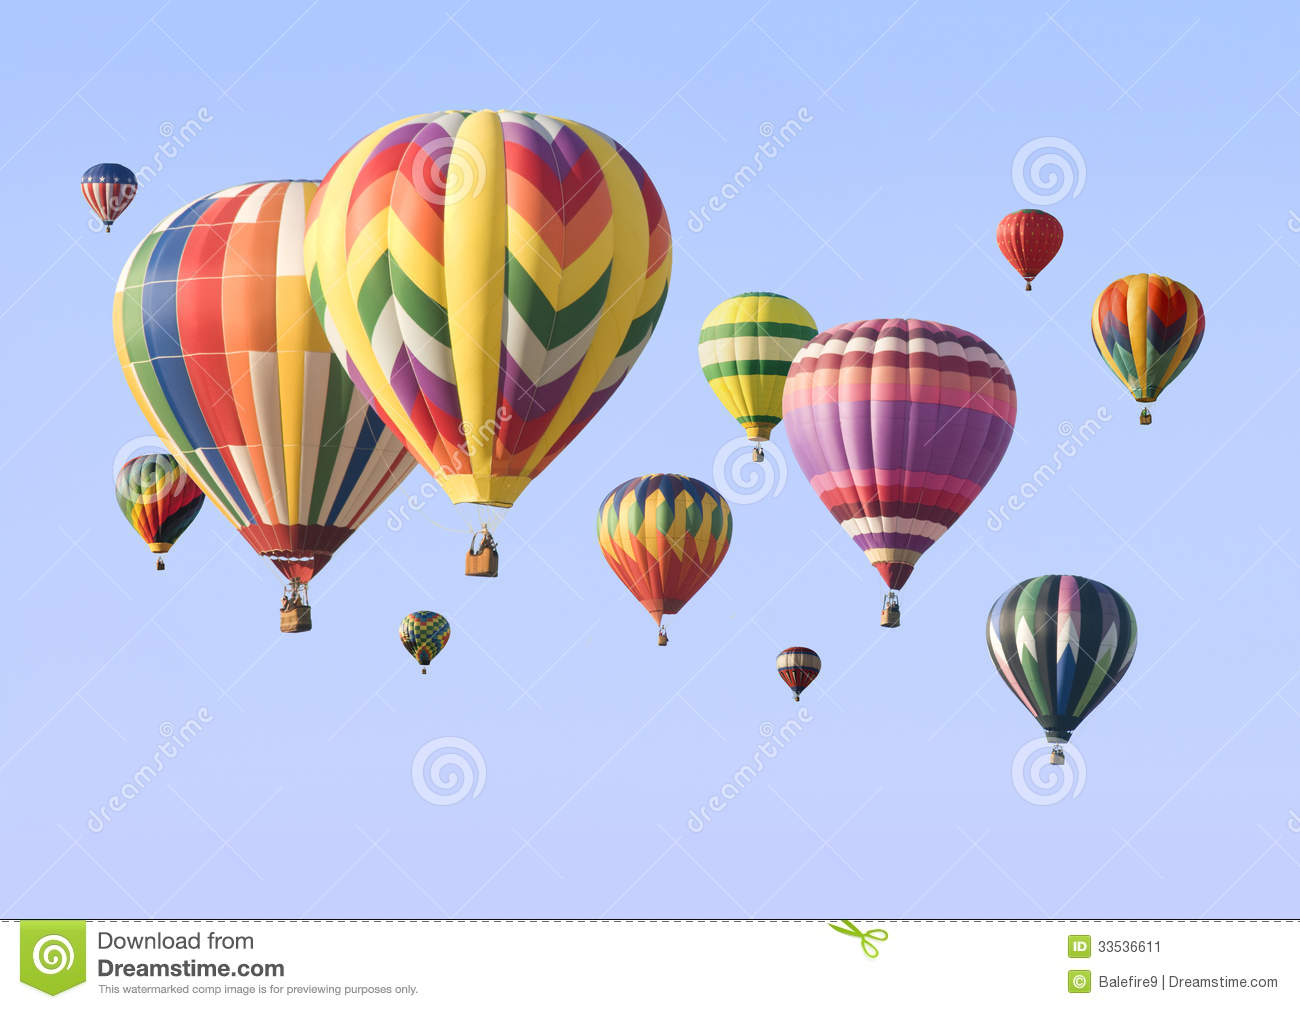 A Group Of Colorful Hot-air Balloons Floating Stock Image ...